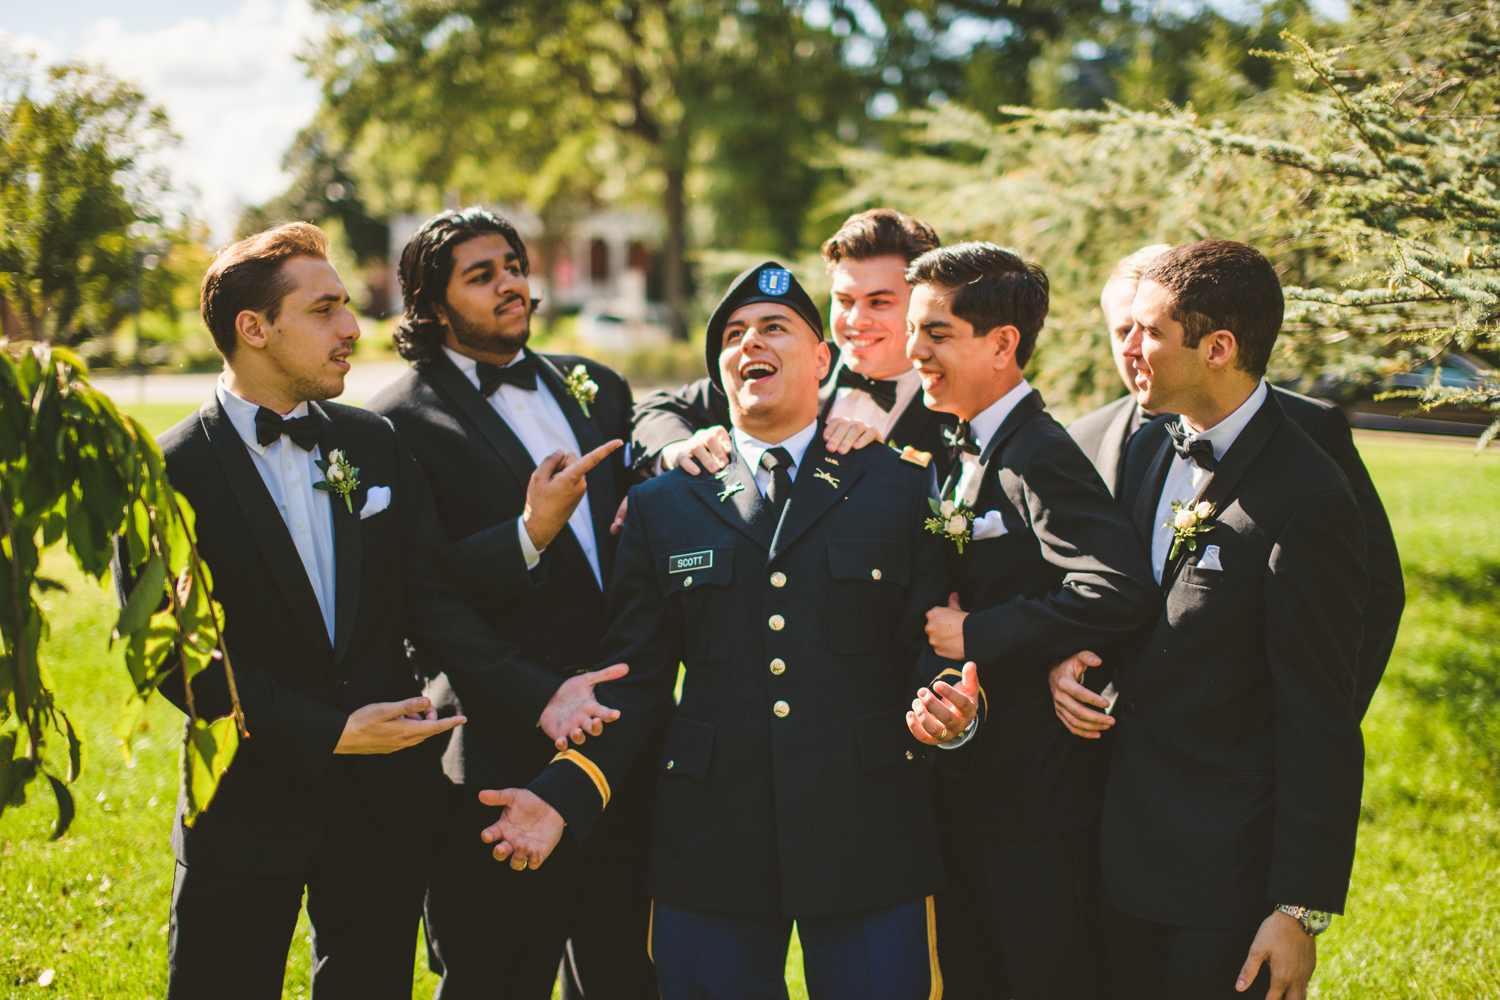 010 groomsmen and the groom being funny during portraits.jpg